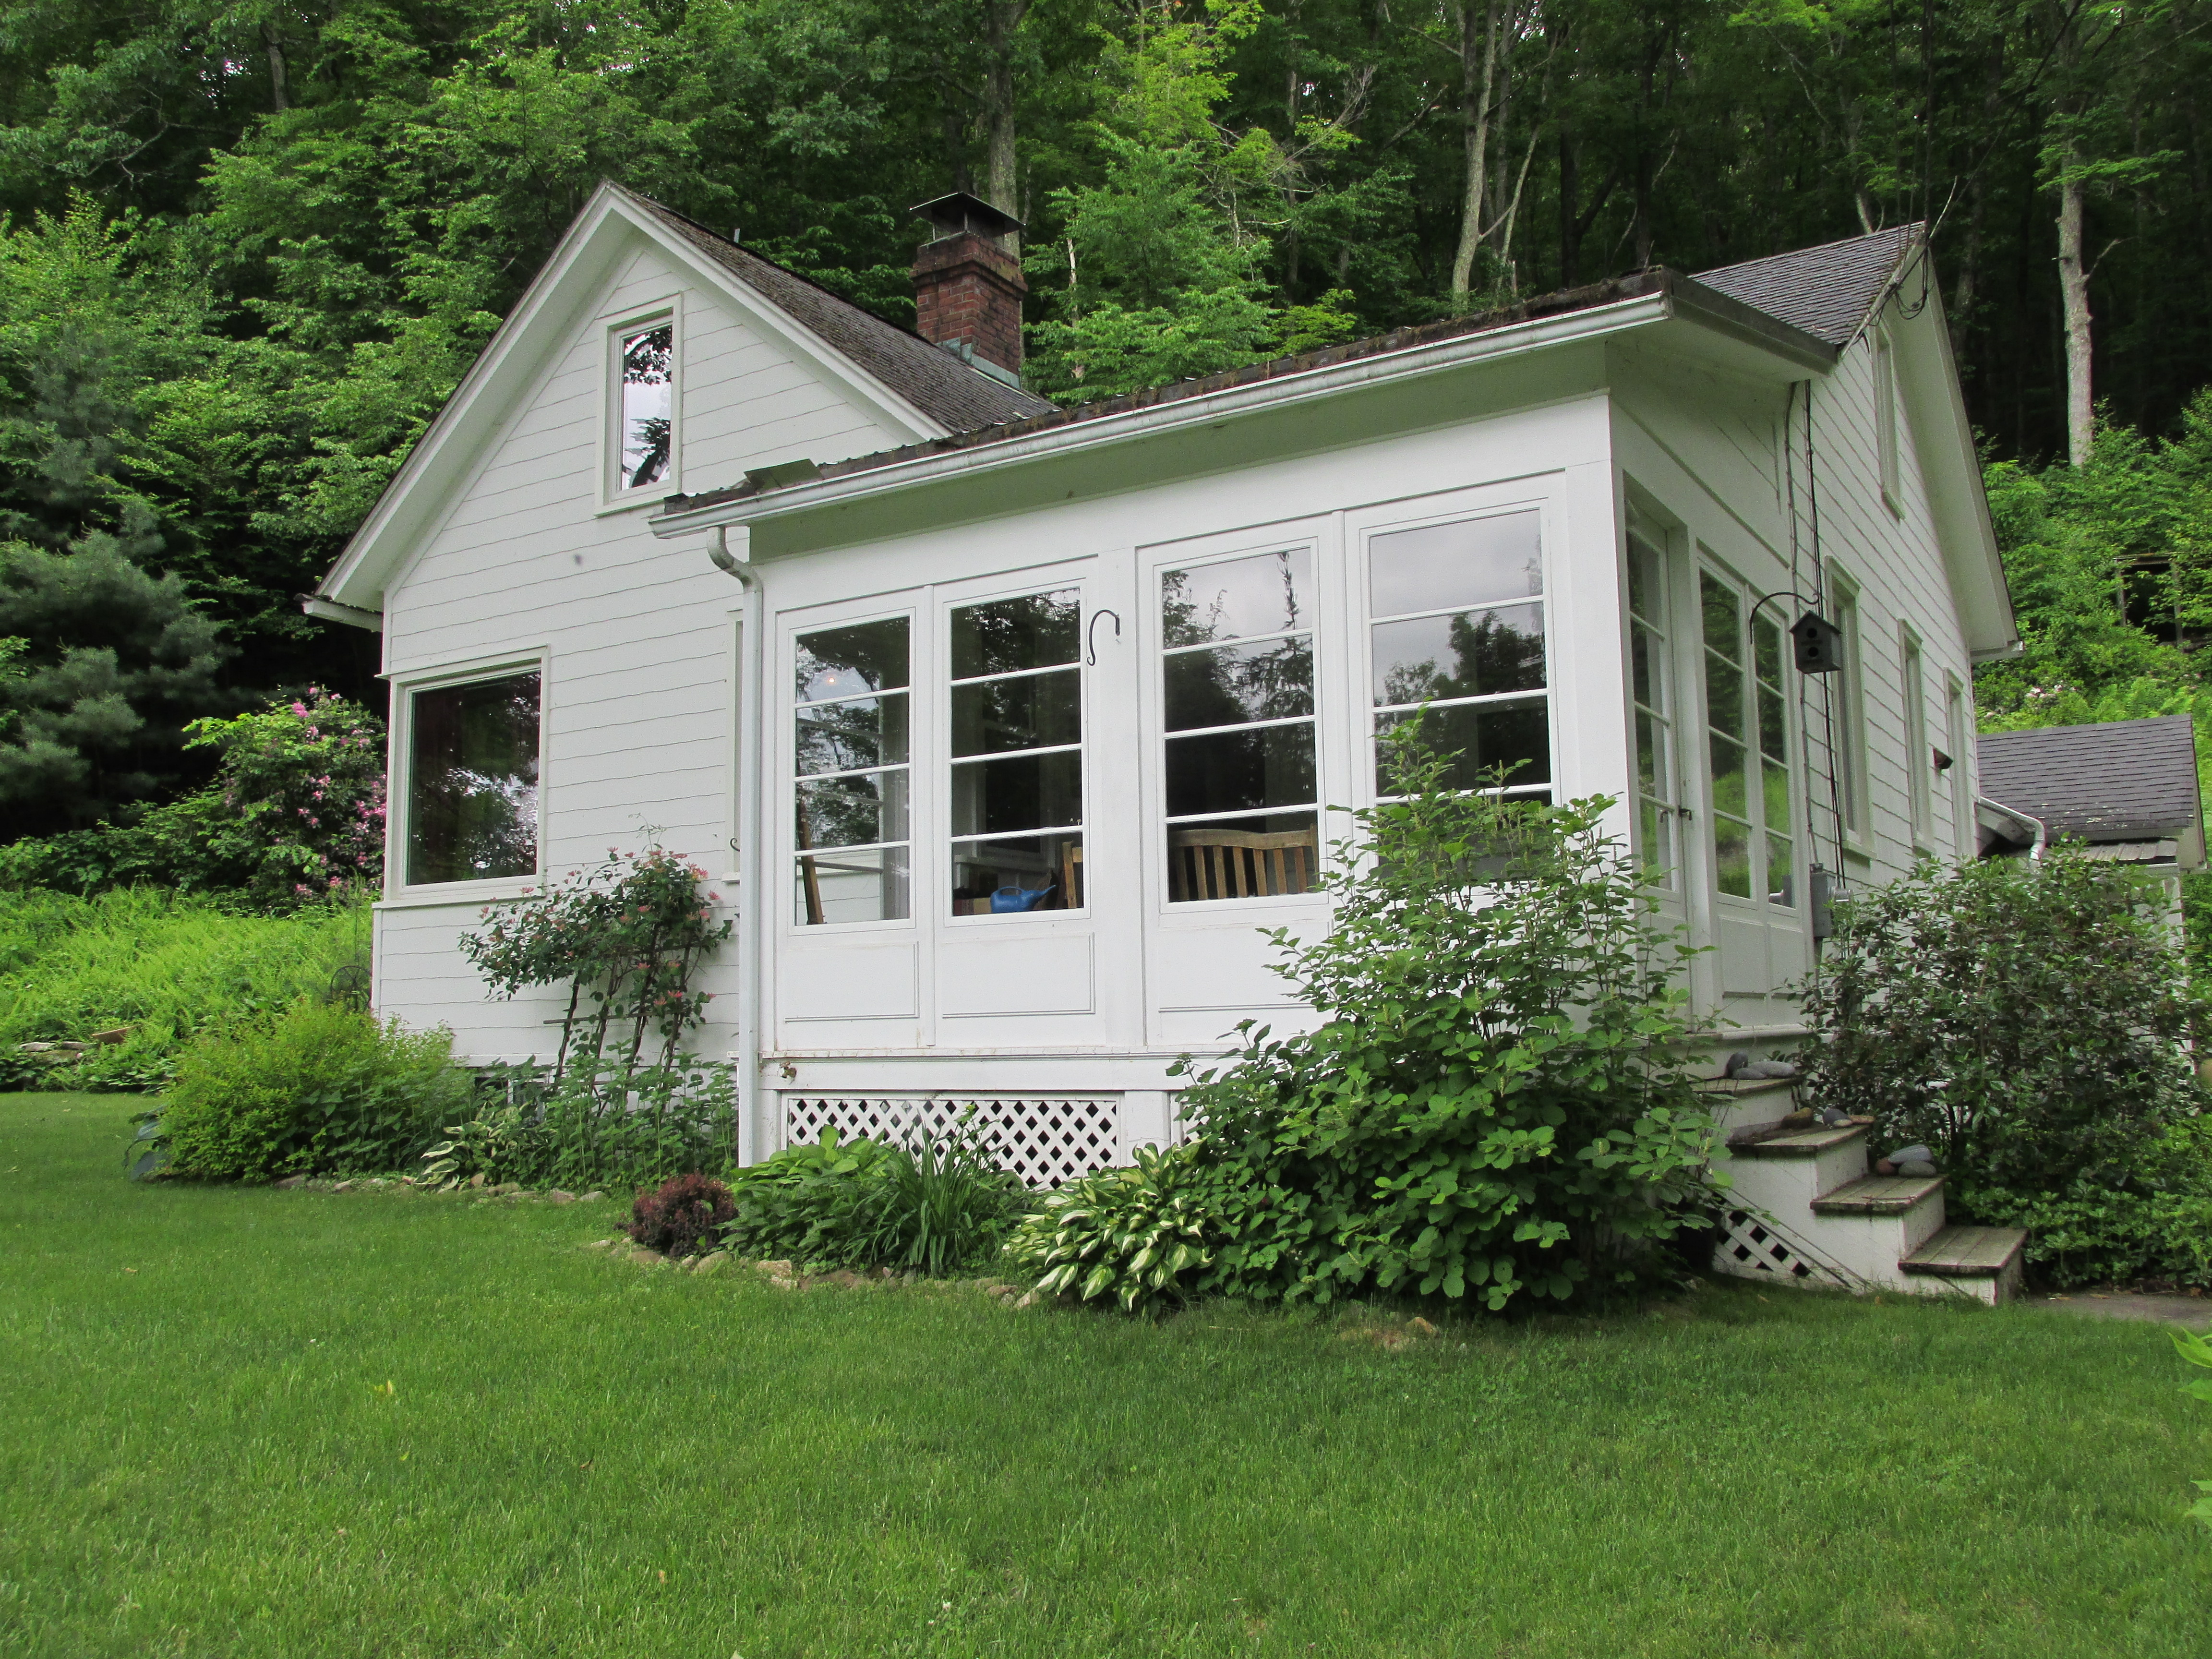 Single Family Home for Sale at 351 Route 7 Sharon, Connecticut 06069 United States